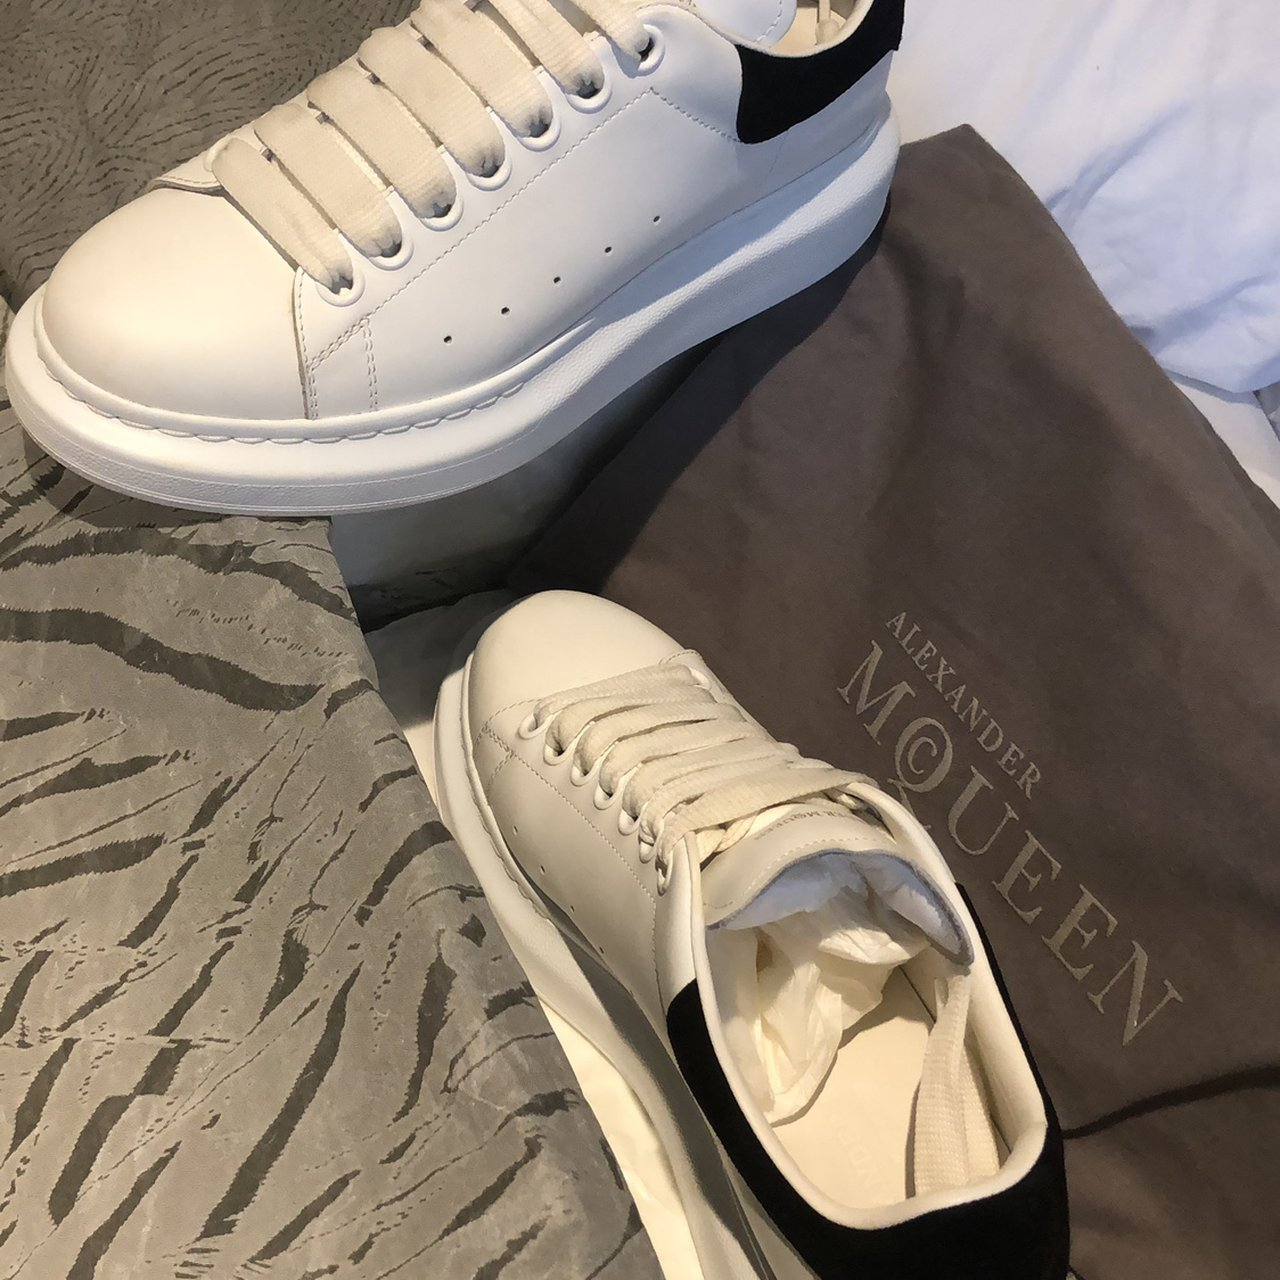 8dda8eb4d09f Alexander McQueen Leather Runway Sneakers White